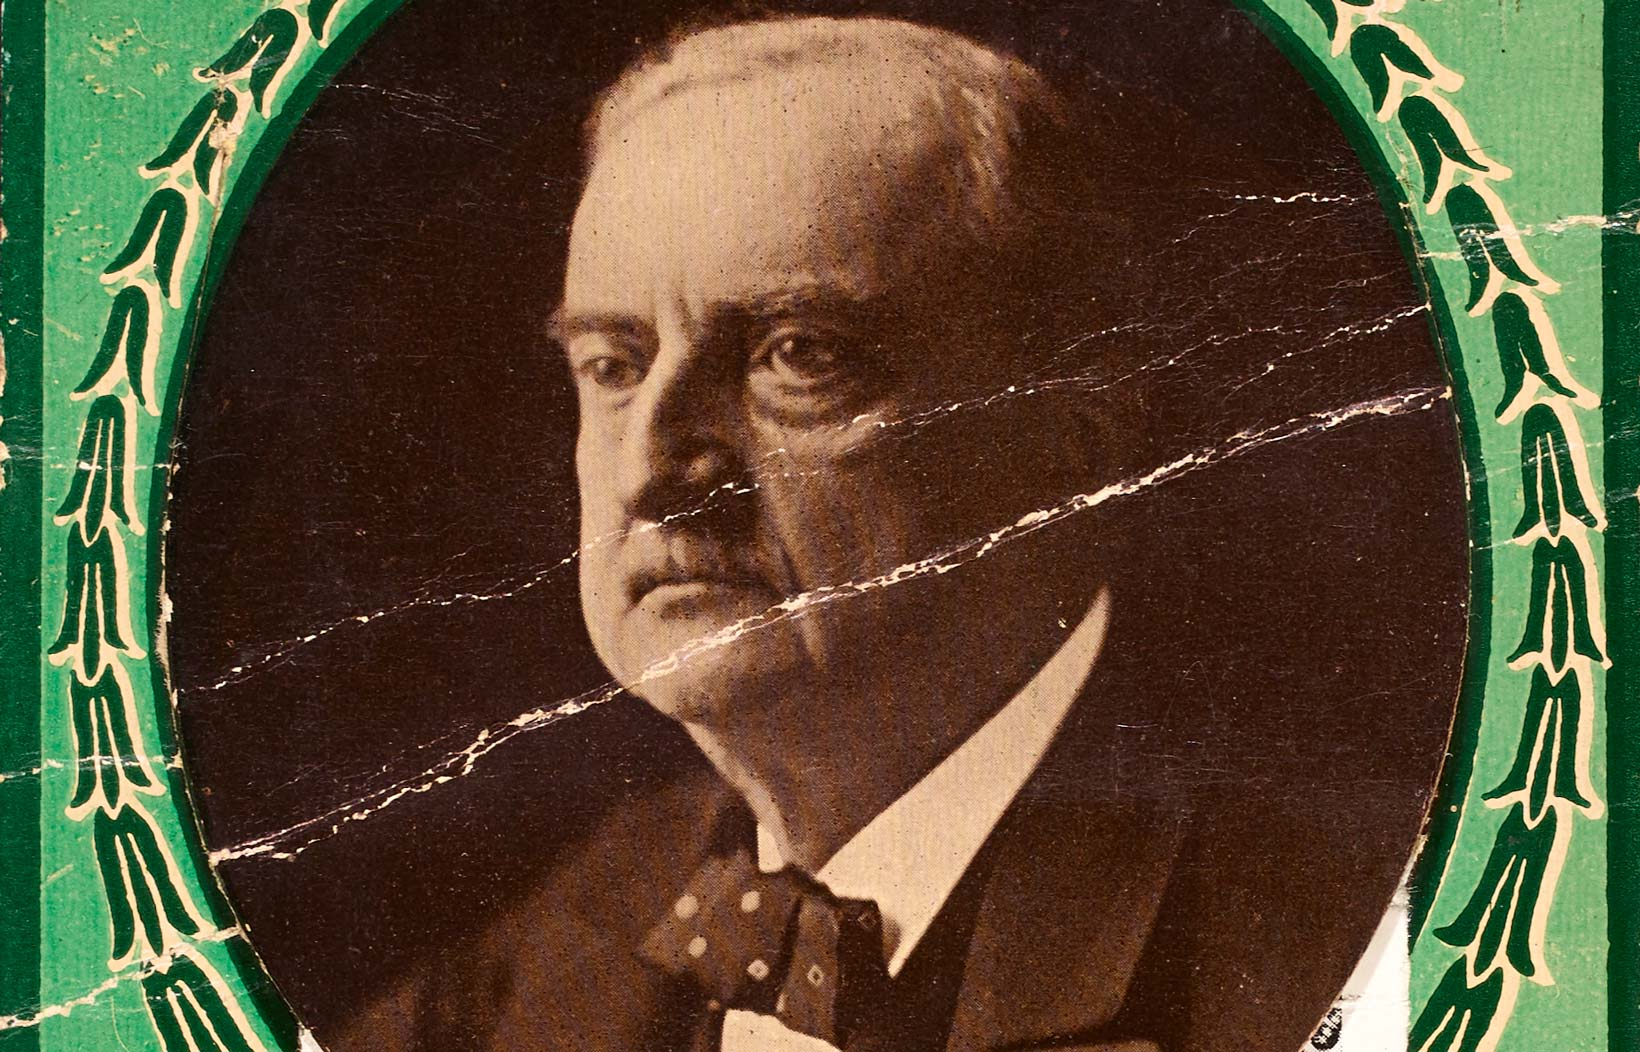 John Redmond dies of heart failure